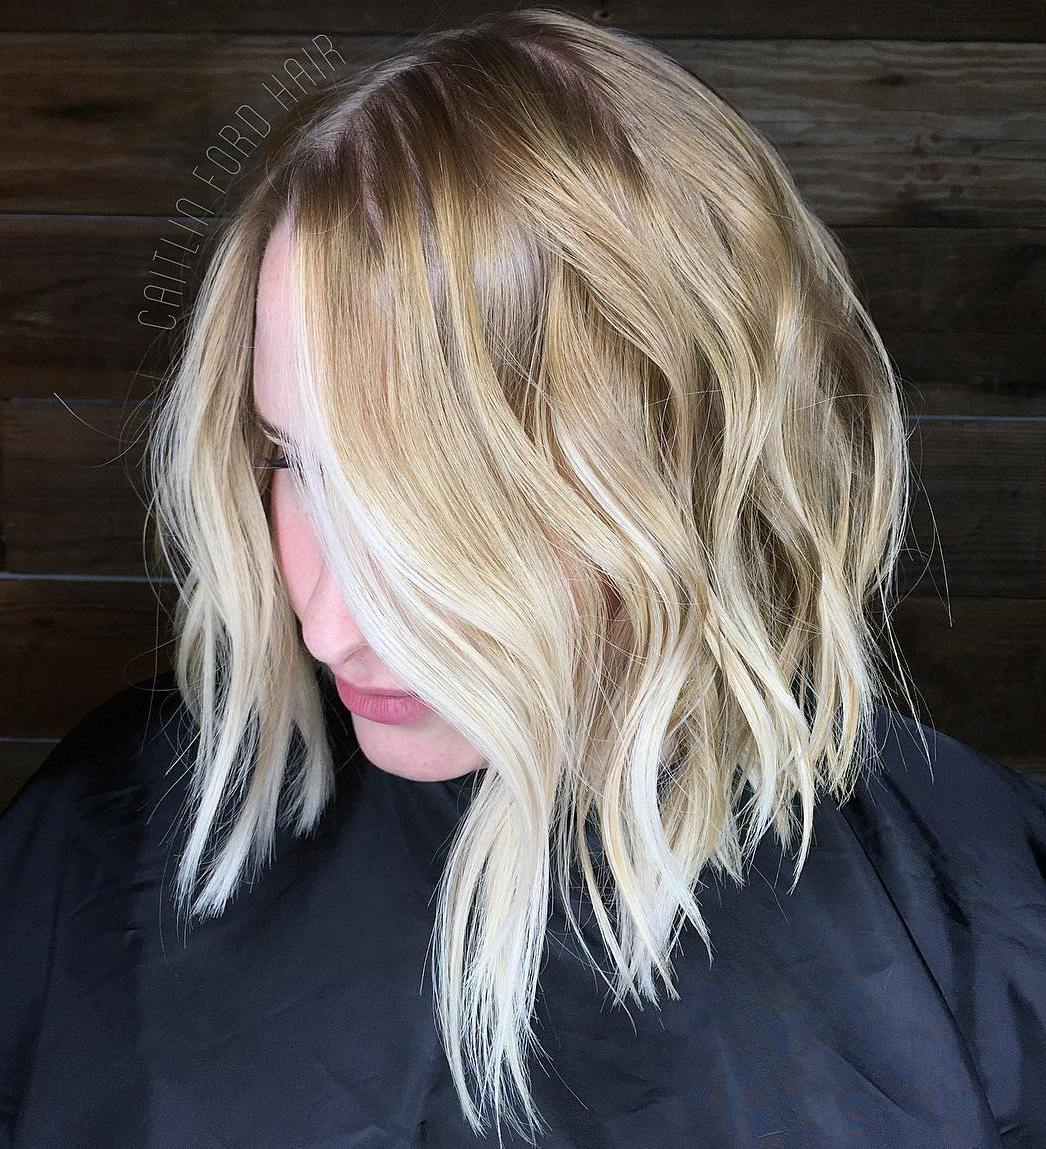 Wavy Angled Bronde Thin Bob with Face-Framing Highlights